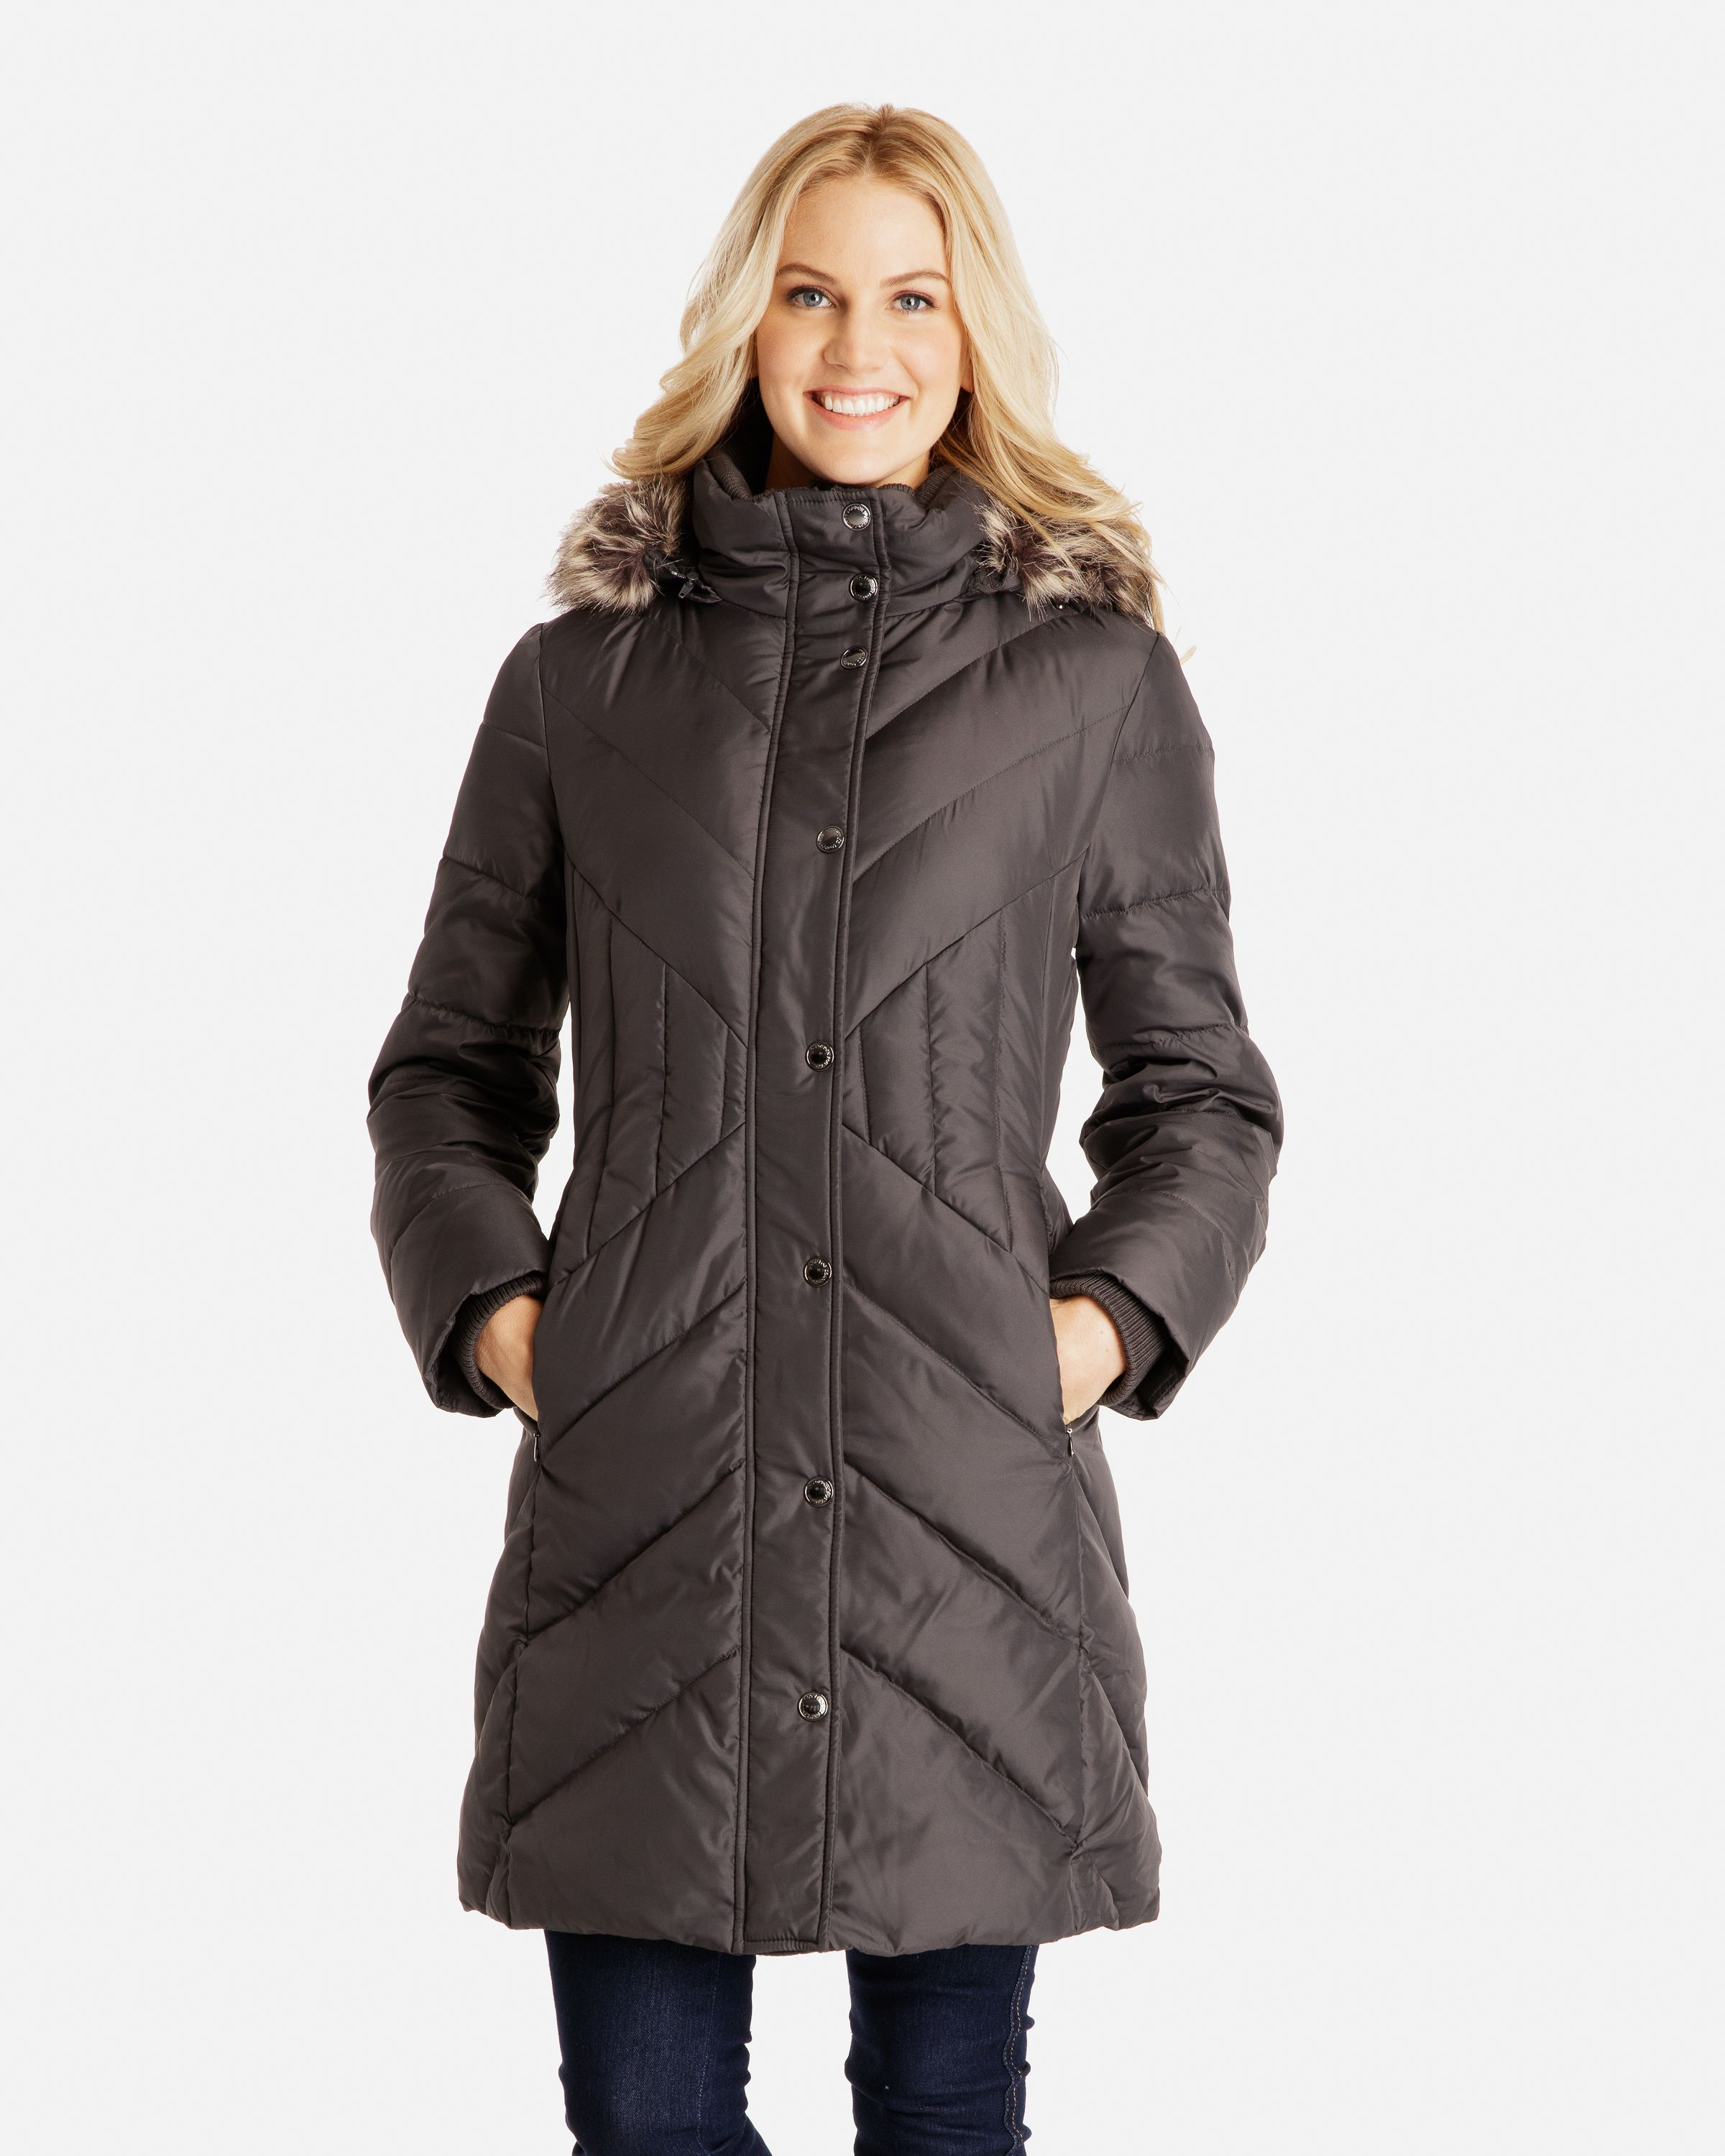 $119 Celine Chevron Quilted Down Coat with Detachable Faux Fur ... : quilted down coats - Adamdwight.com